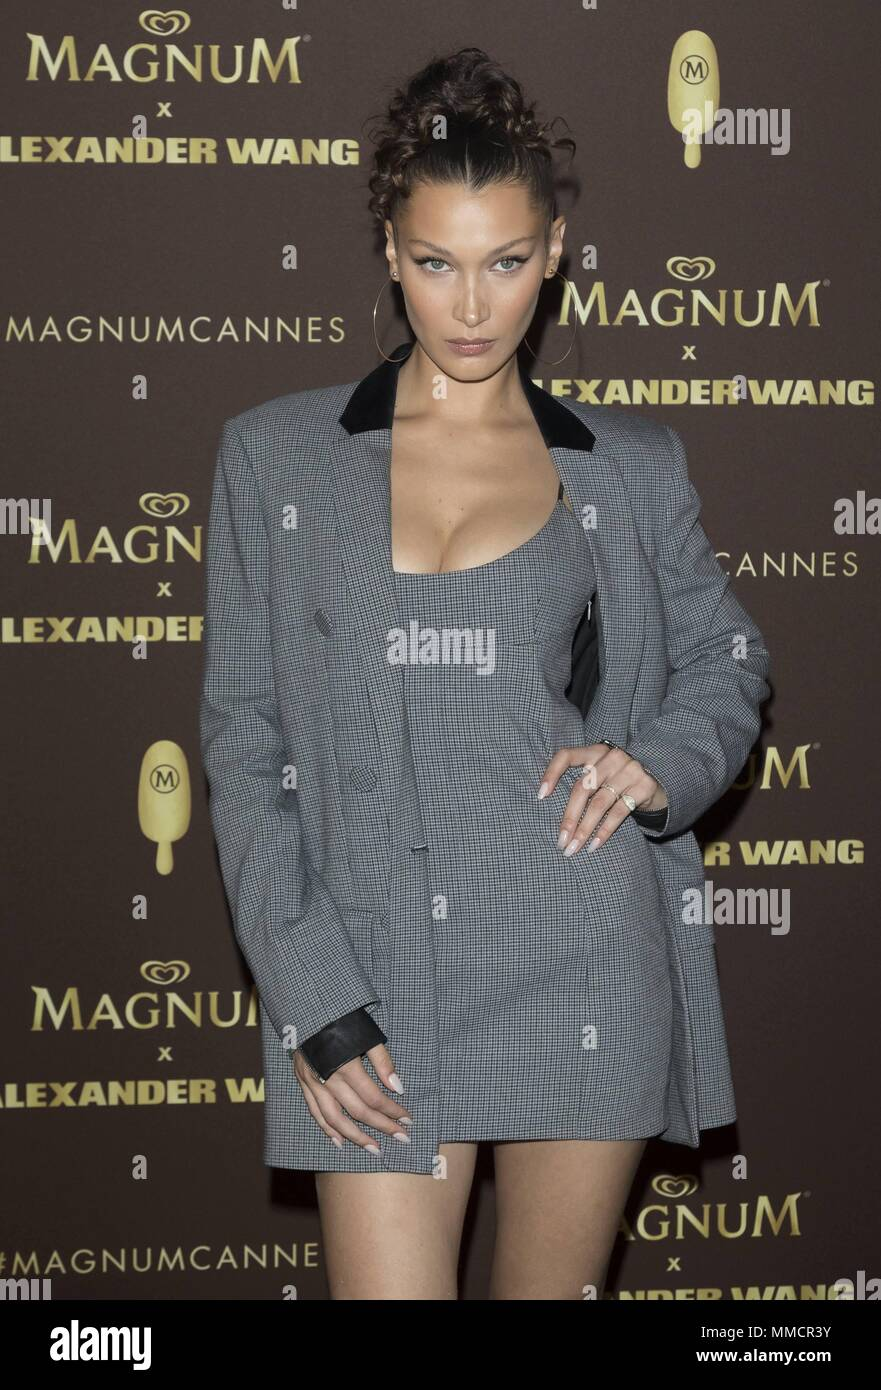 8d4e136c35a5 Bella Hadid attends the party of 'Magnum X Alexander Wang' during the 71st  Cannes Film Festival at L'Ondine Beach in Cannes, France, on 10 May 2018.